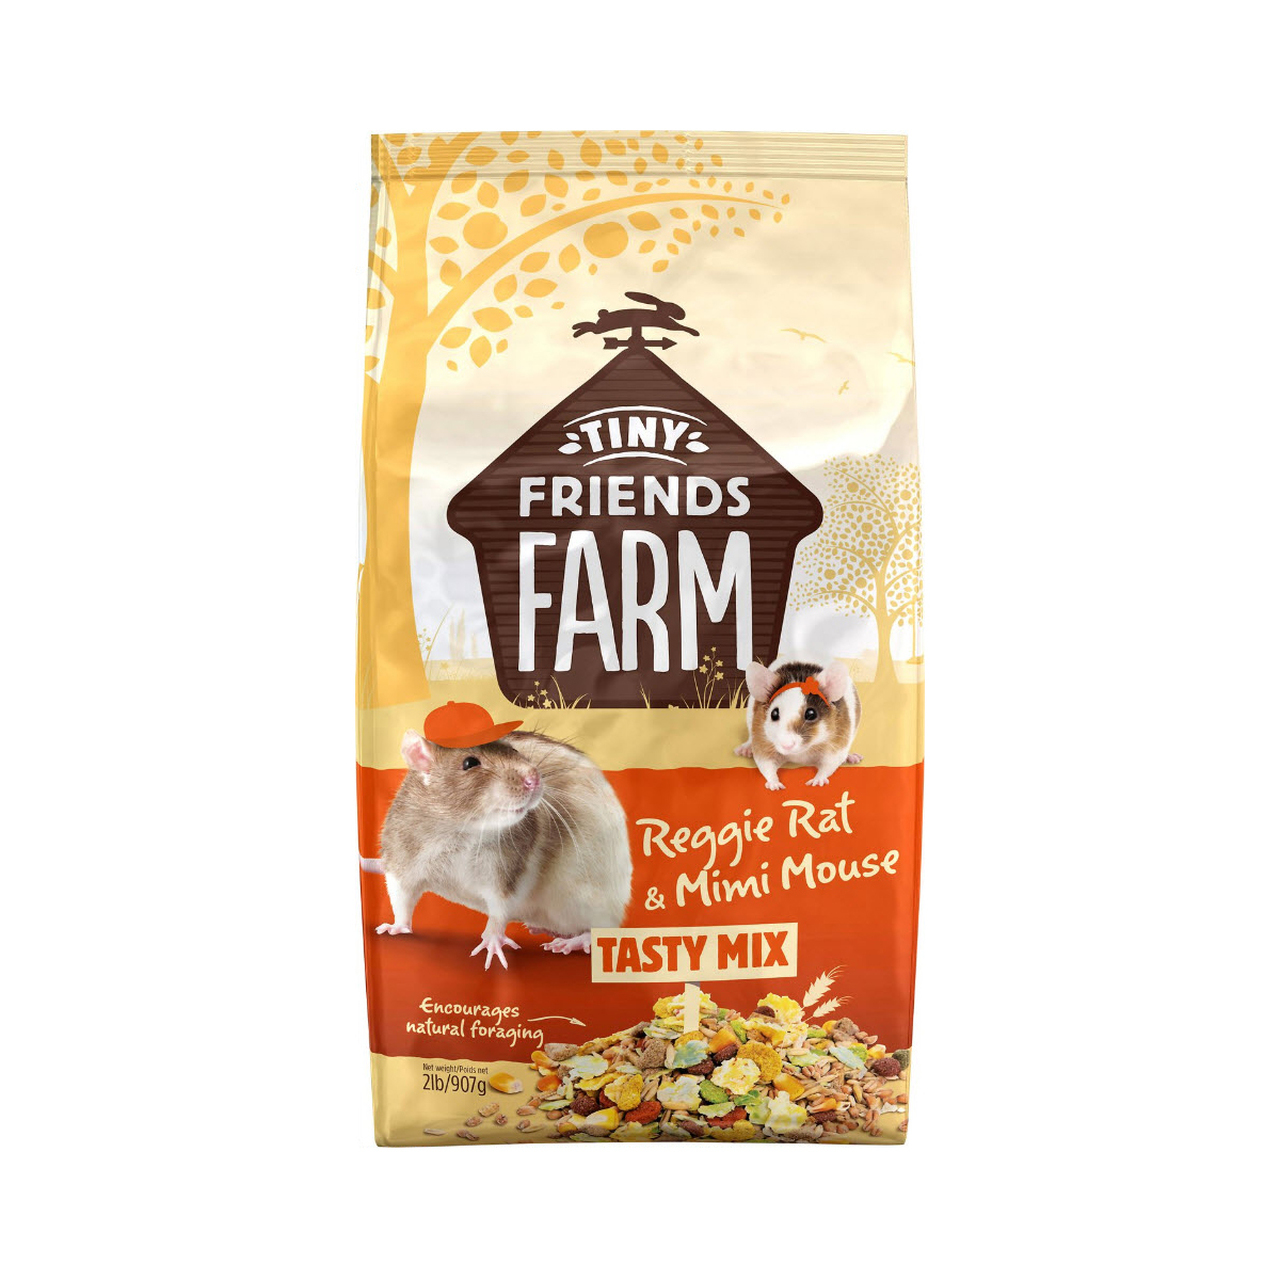 Supreme Petfoods Tiny Friends Farm Reggie Rat & Mimi Mouse Tasty Mix Food, 2-lb